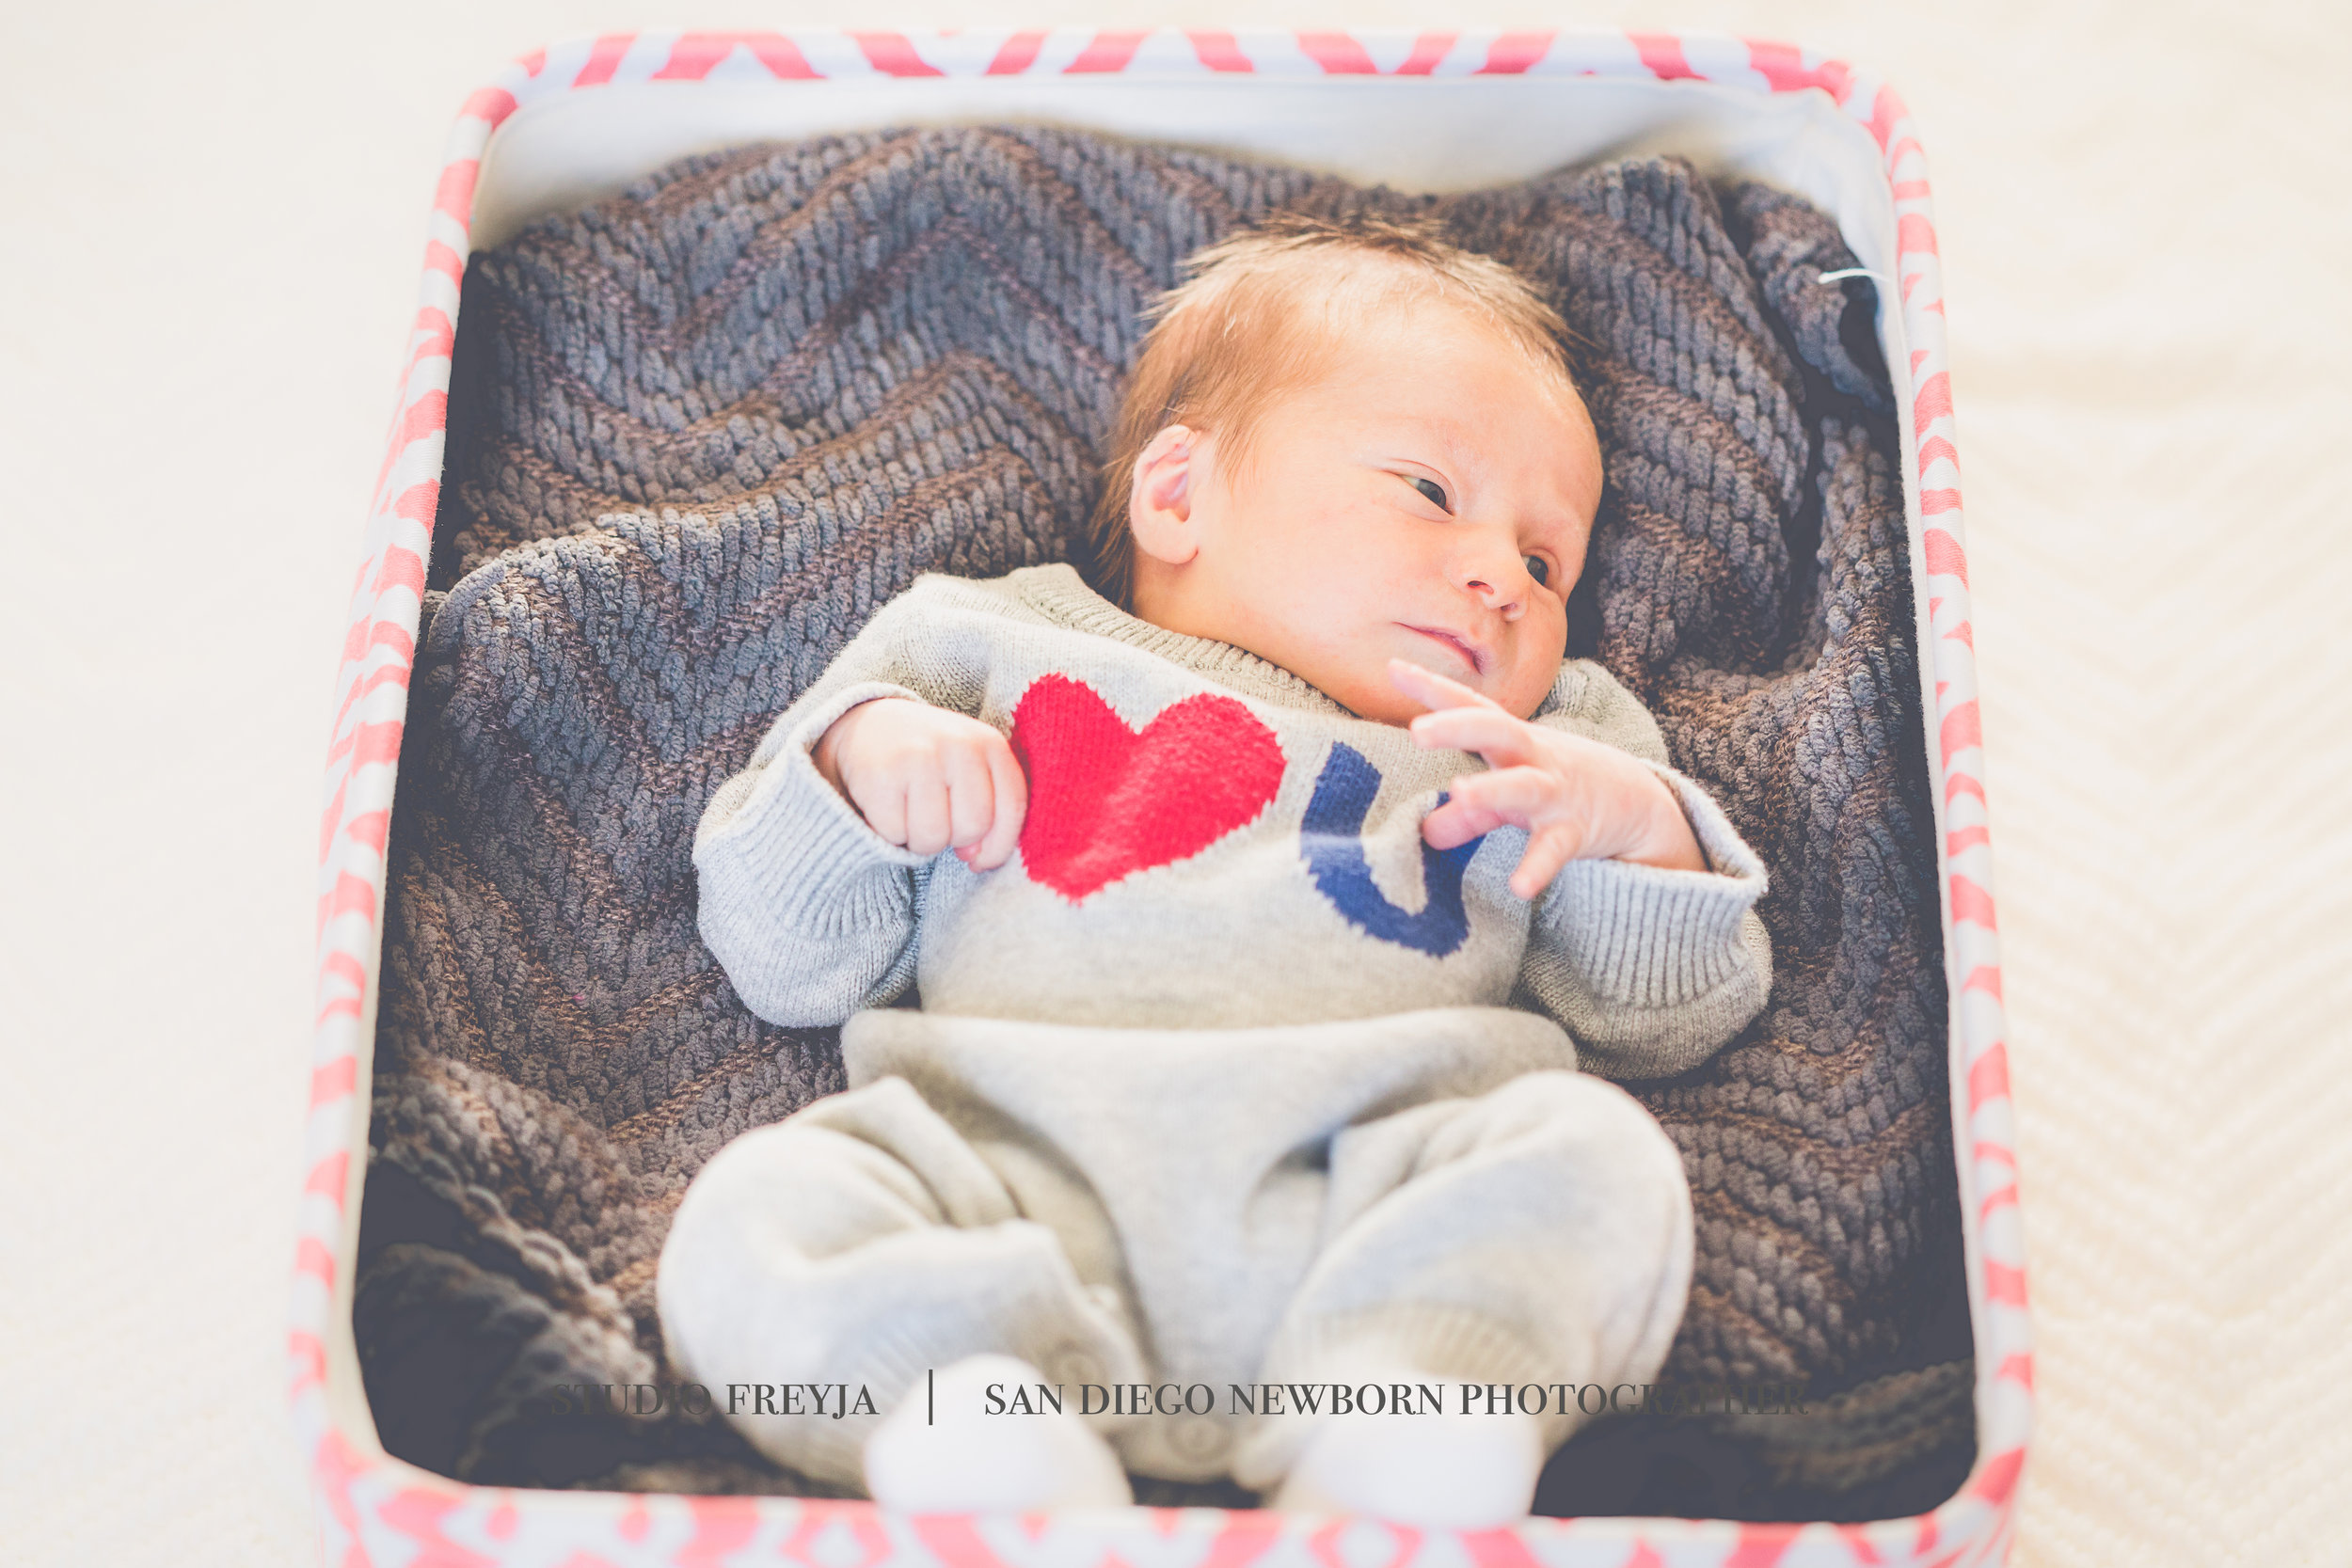 My very first newborn session before I really knew what newborn photography really was or entailed.